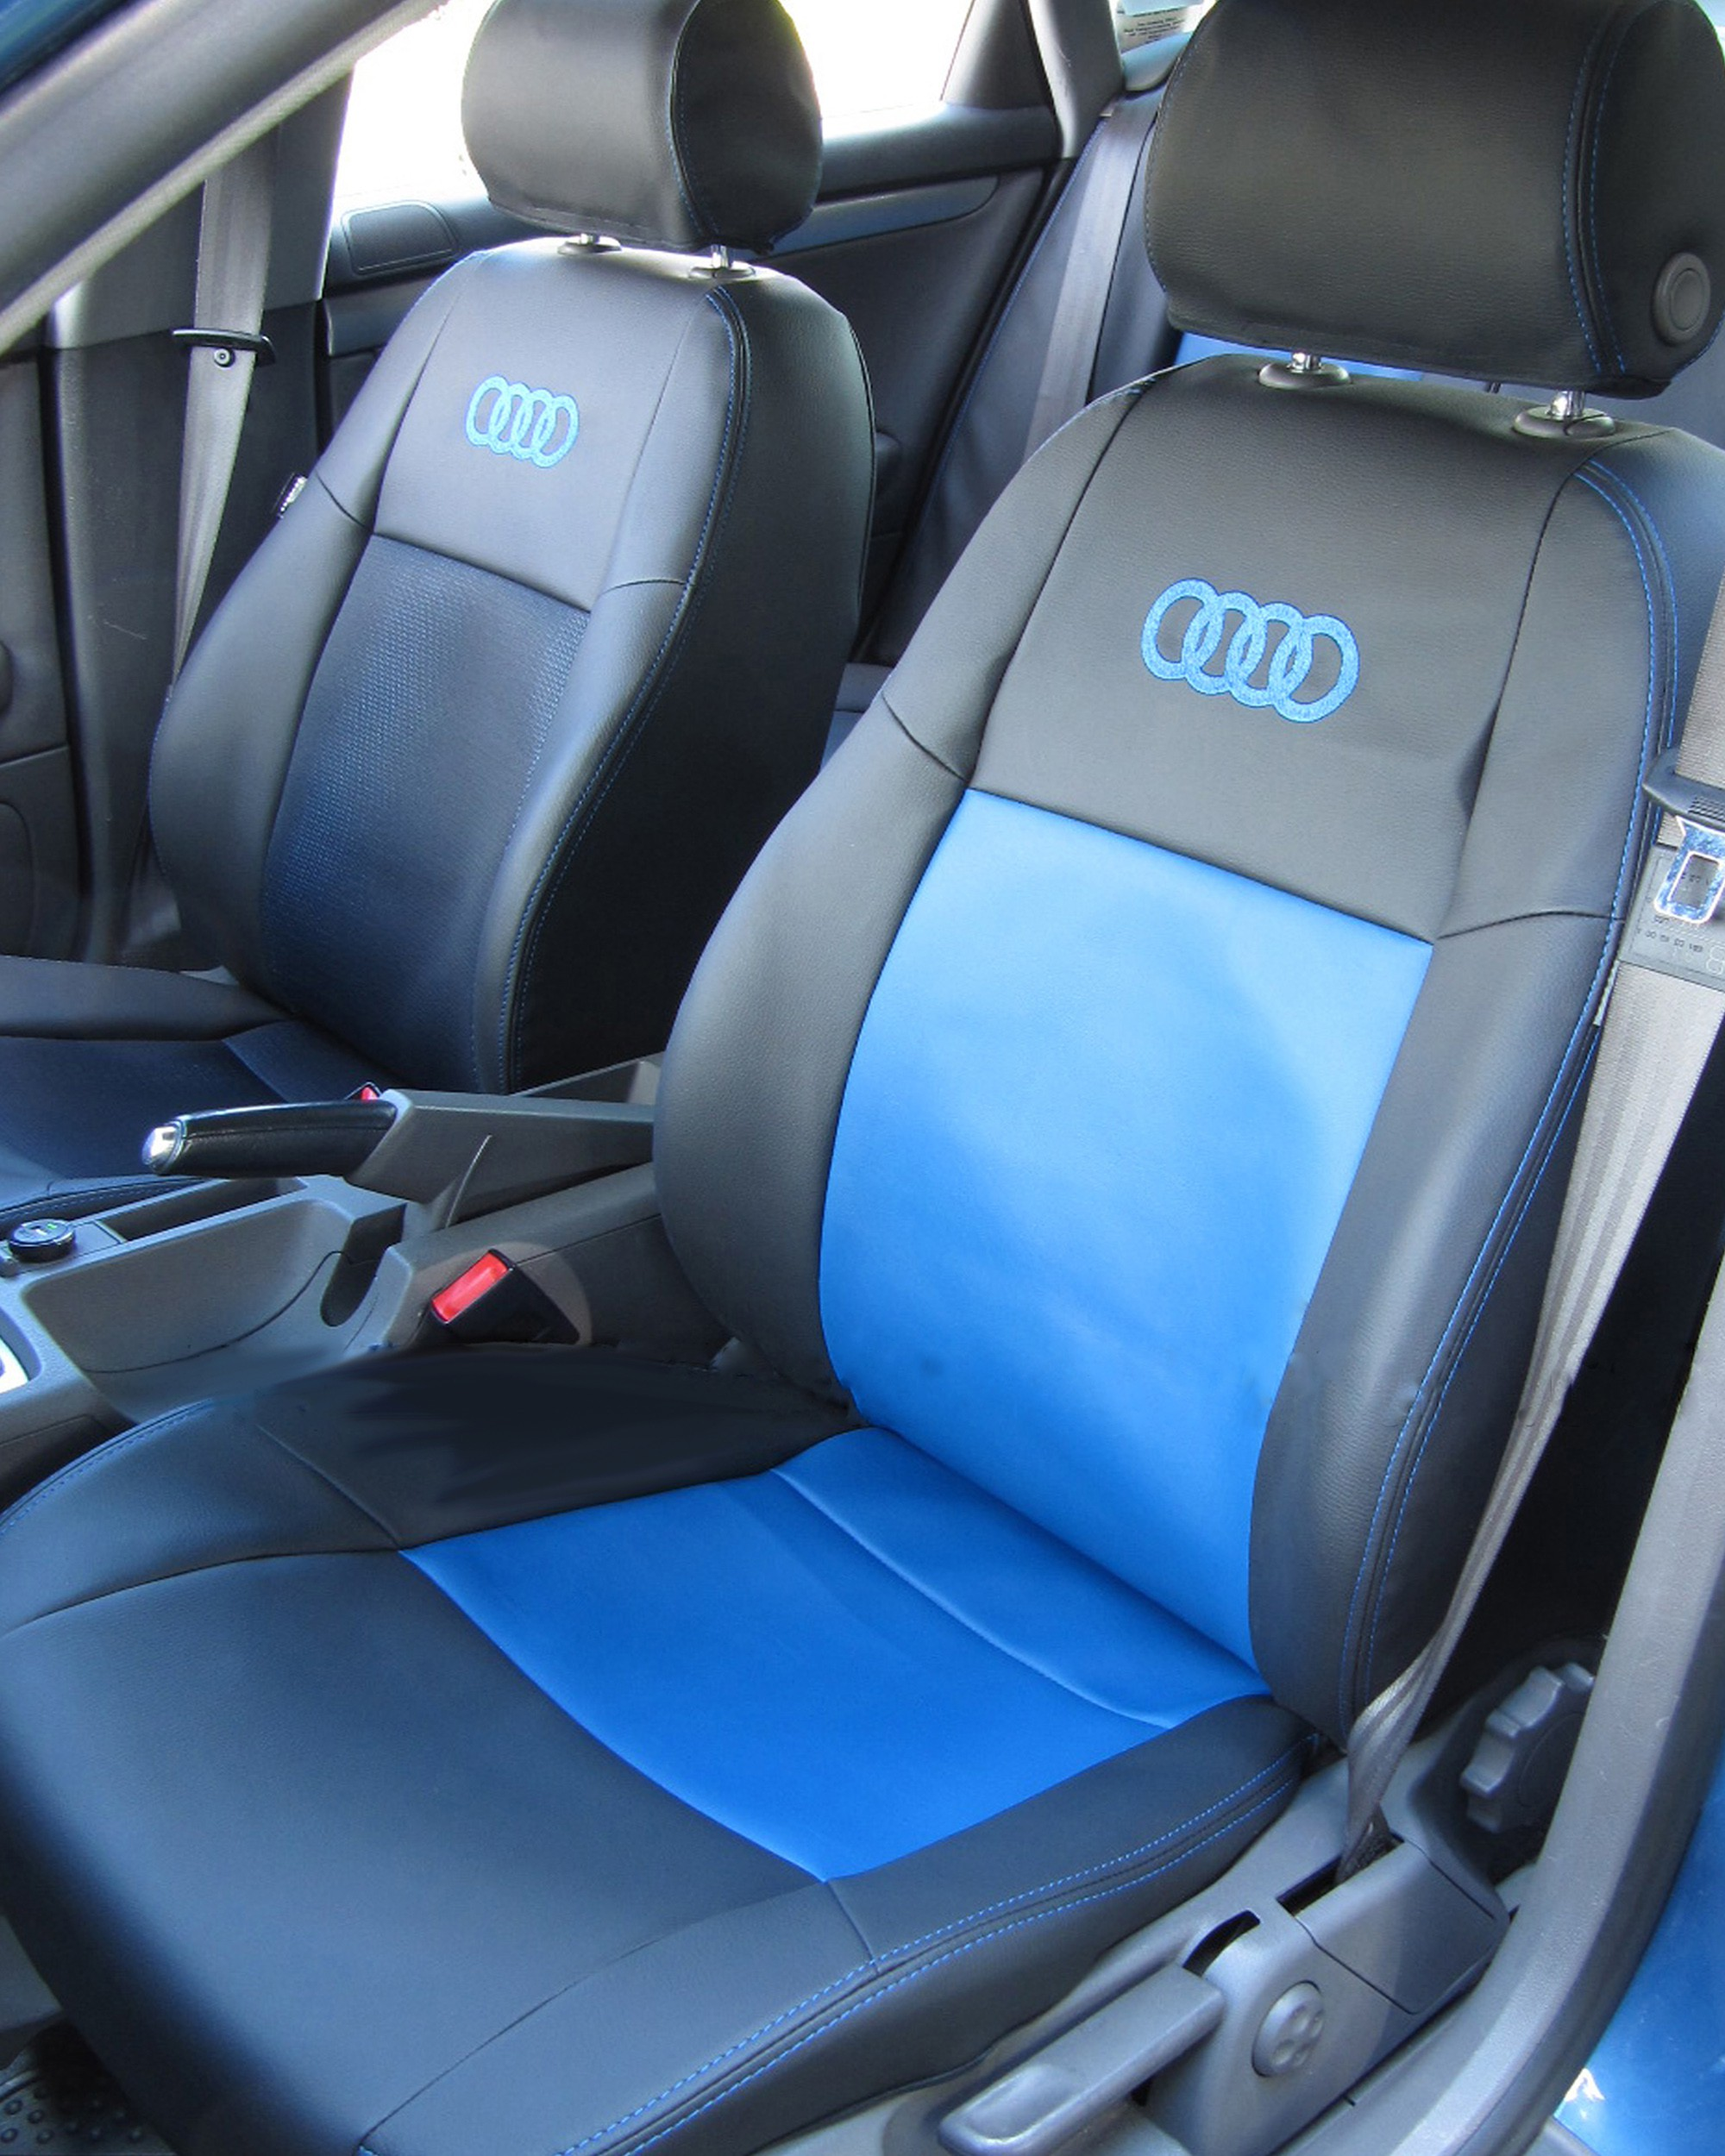 Audi A3 Blue Pass Seat Covers